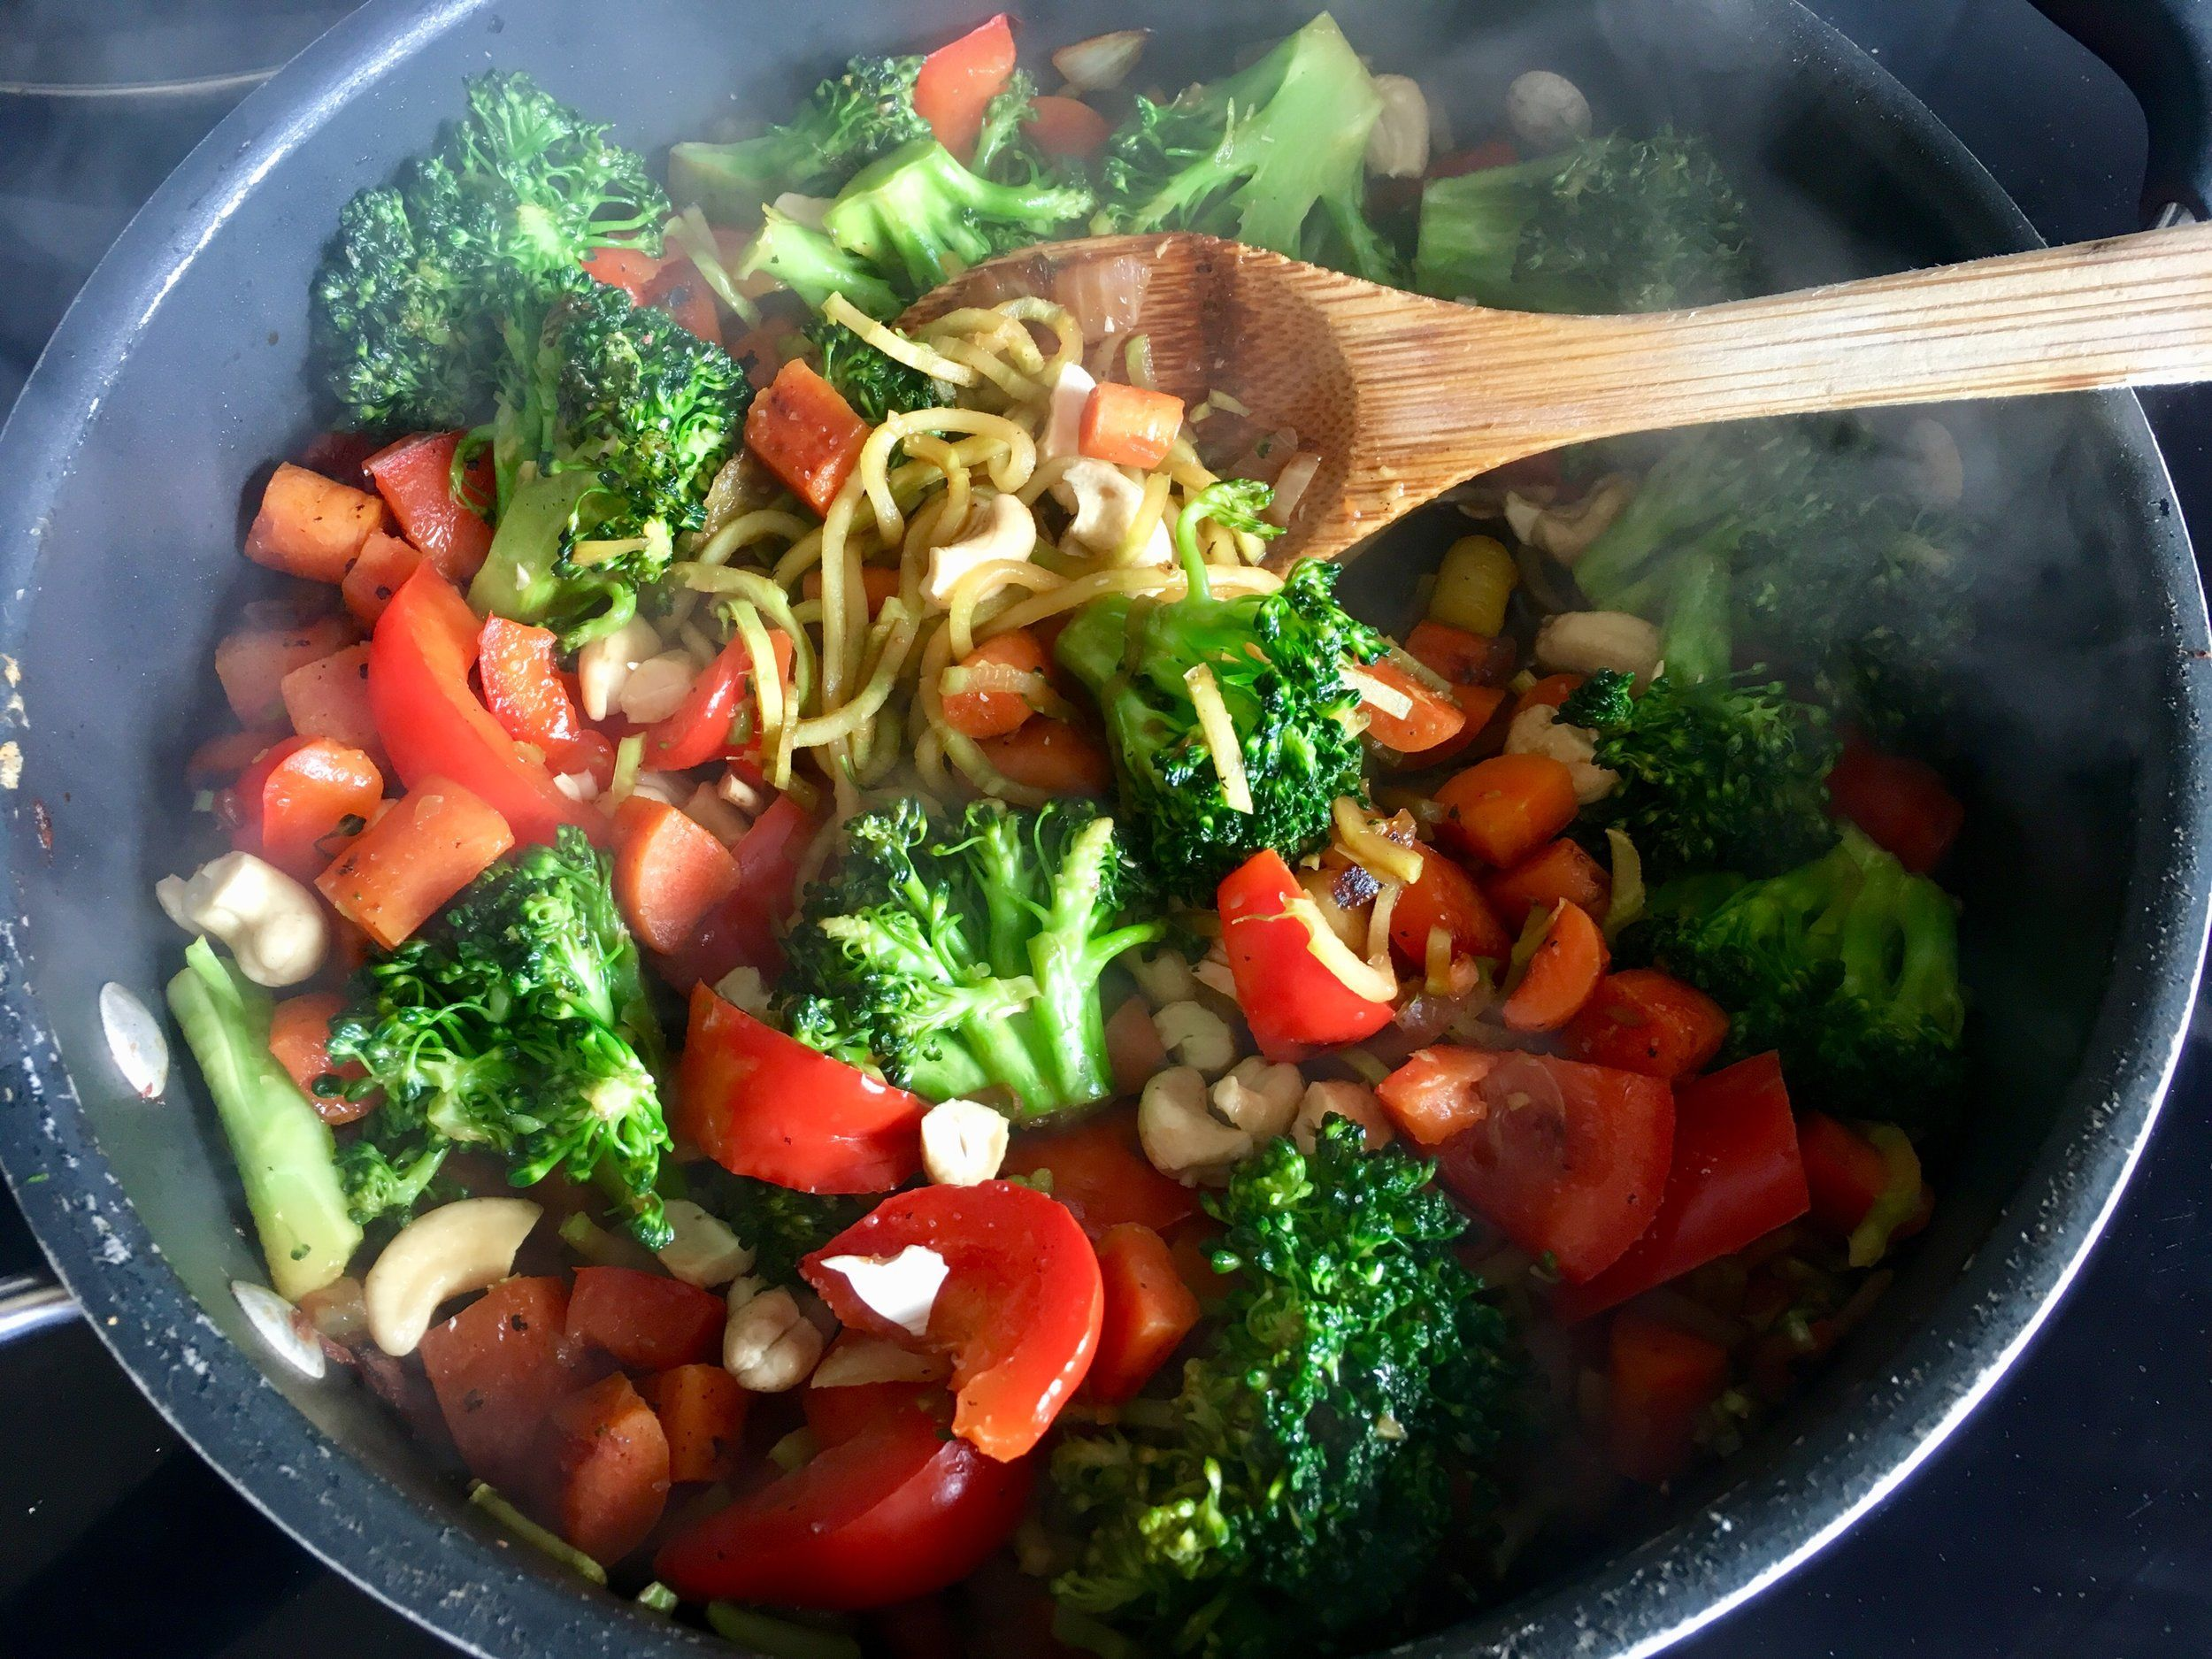 My top 10 ideas for lowcarb vegetarian and vegan meals